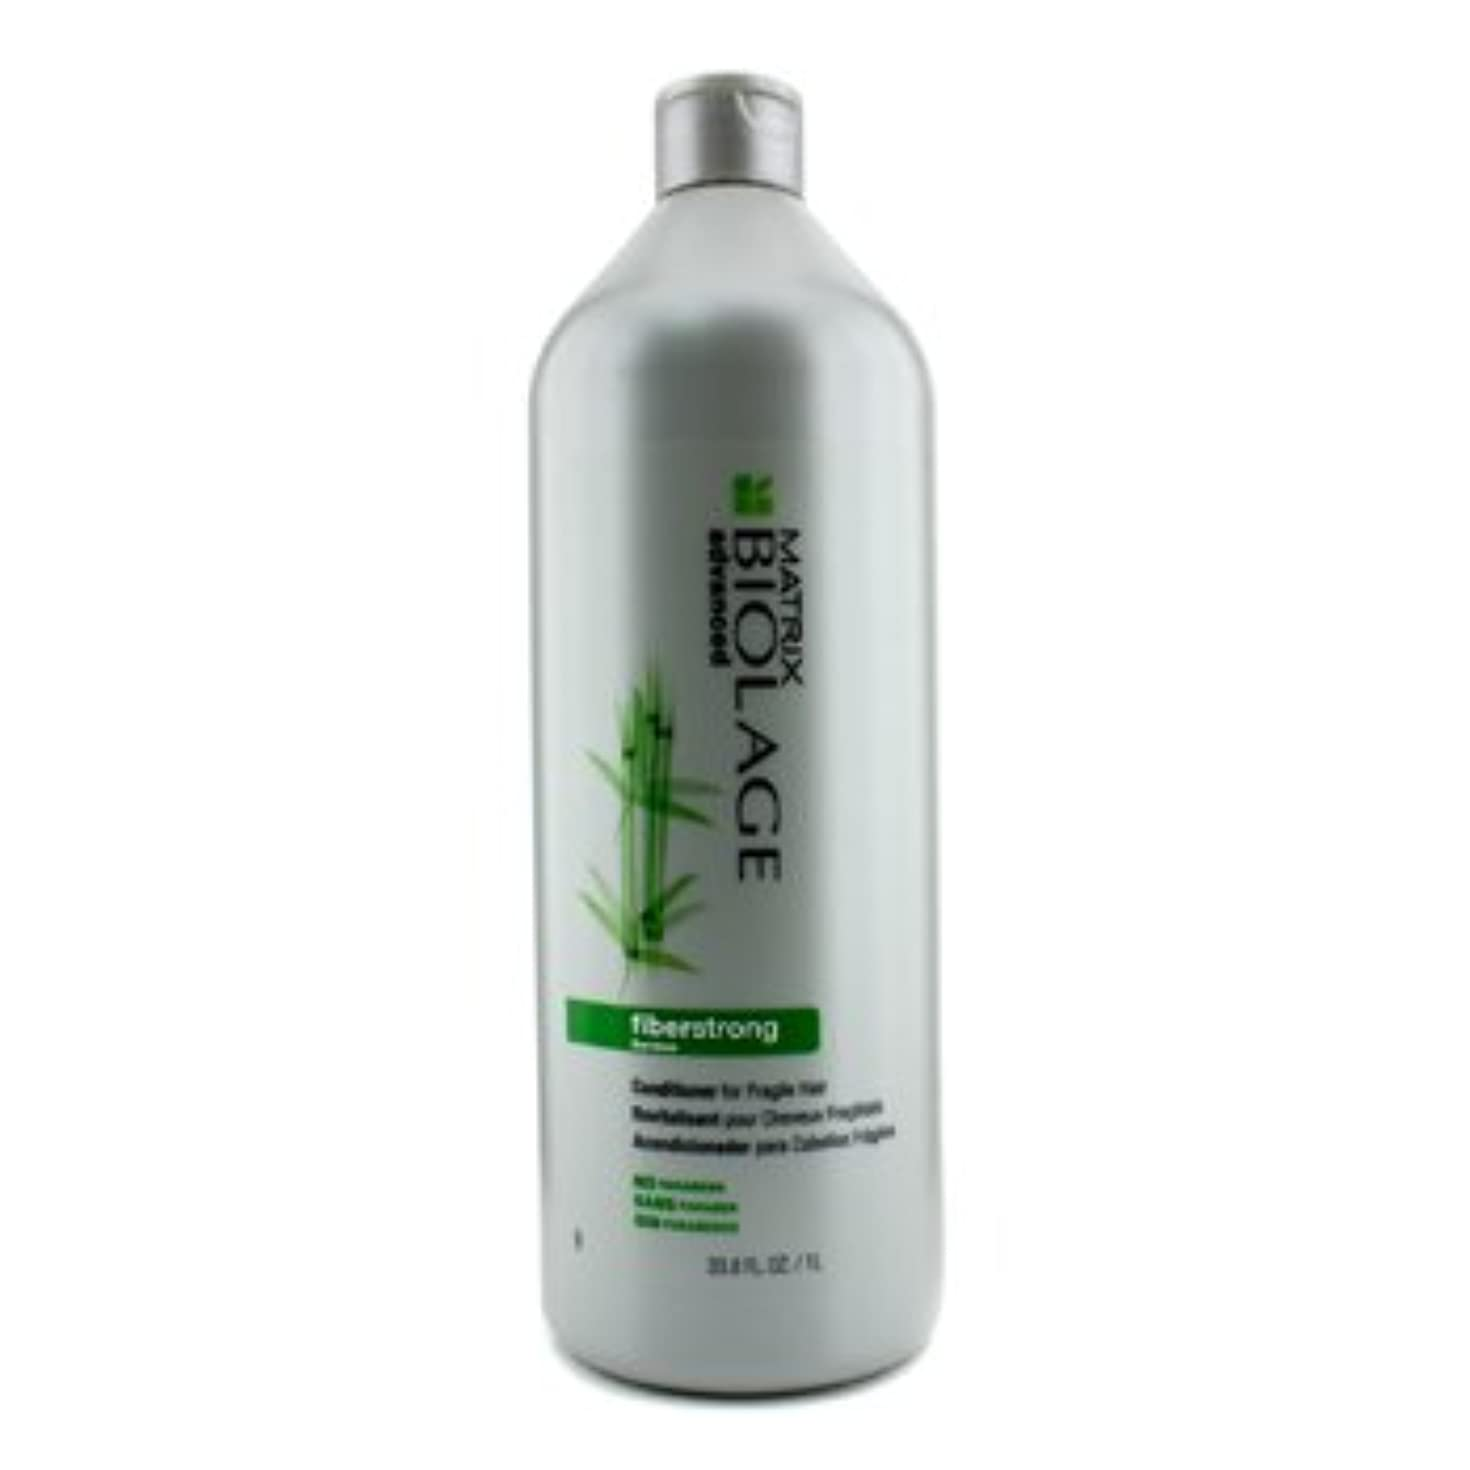 モール通行料金逃す[Matrix] Biolage Advanced FiberStrong Conditioner (For Fragile Hair) 1000ml/33.8oz